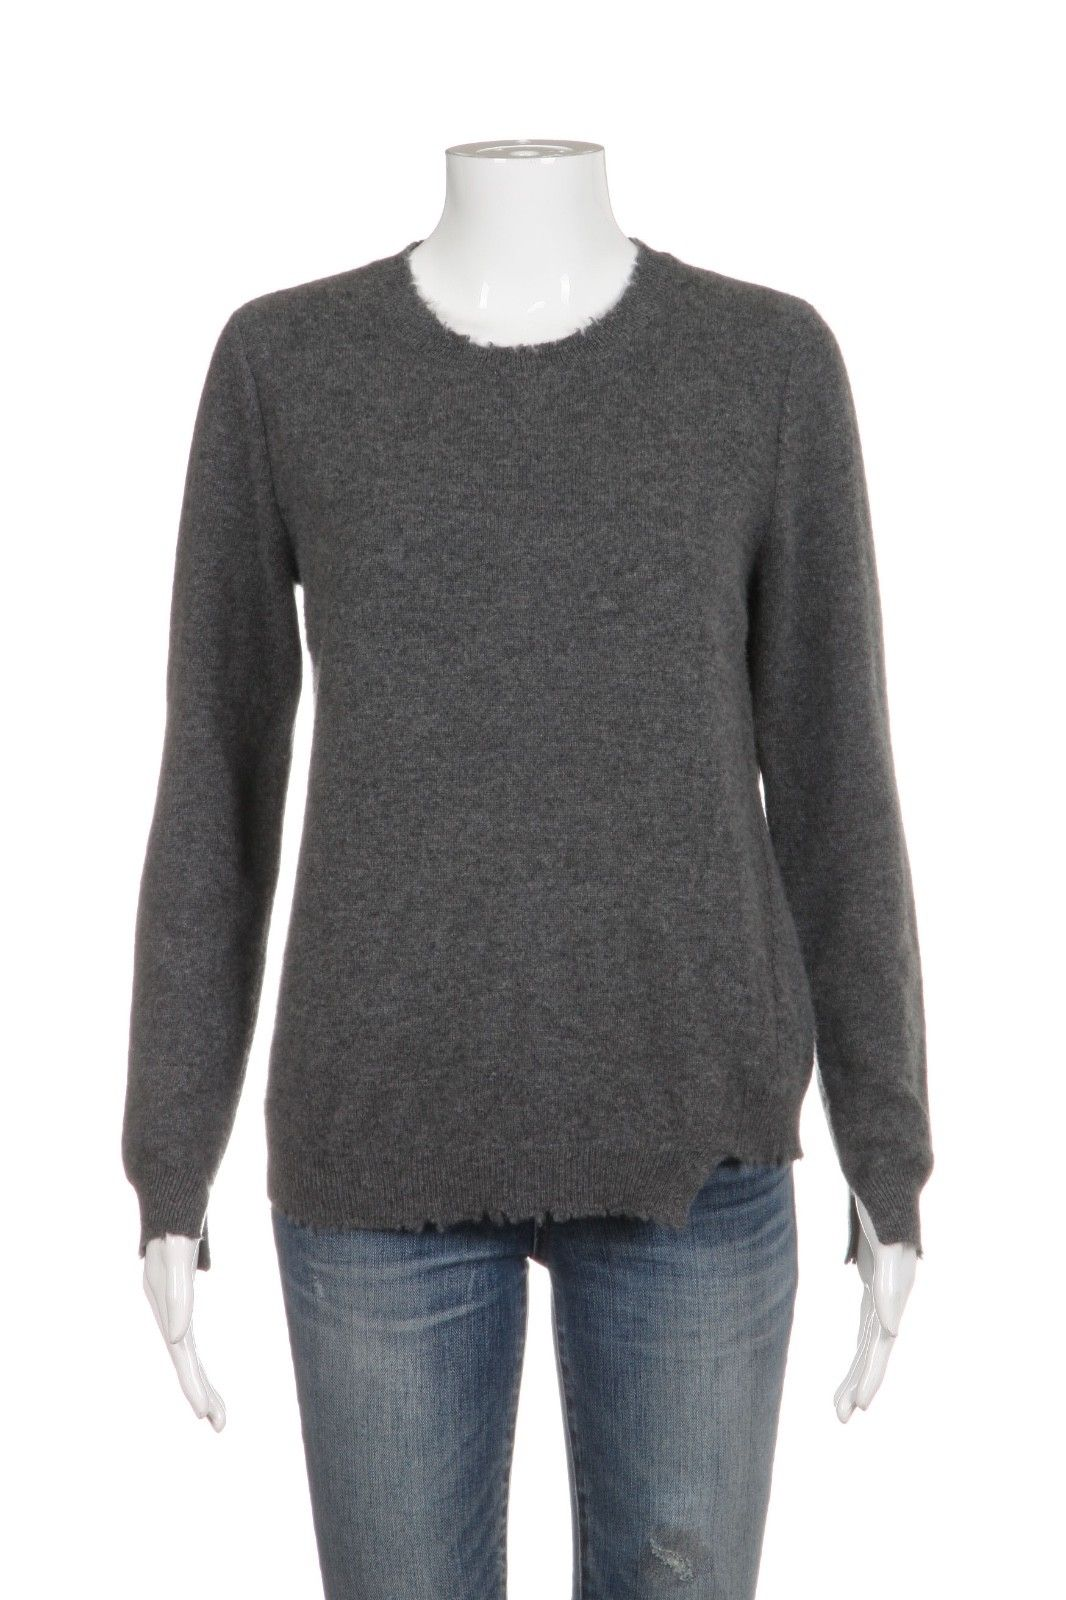 27 MILES MALIBU Distressed 100% Cashmere Sweater Size S